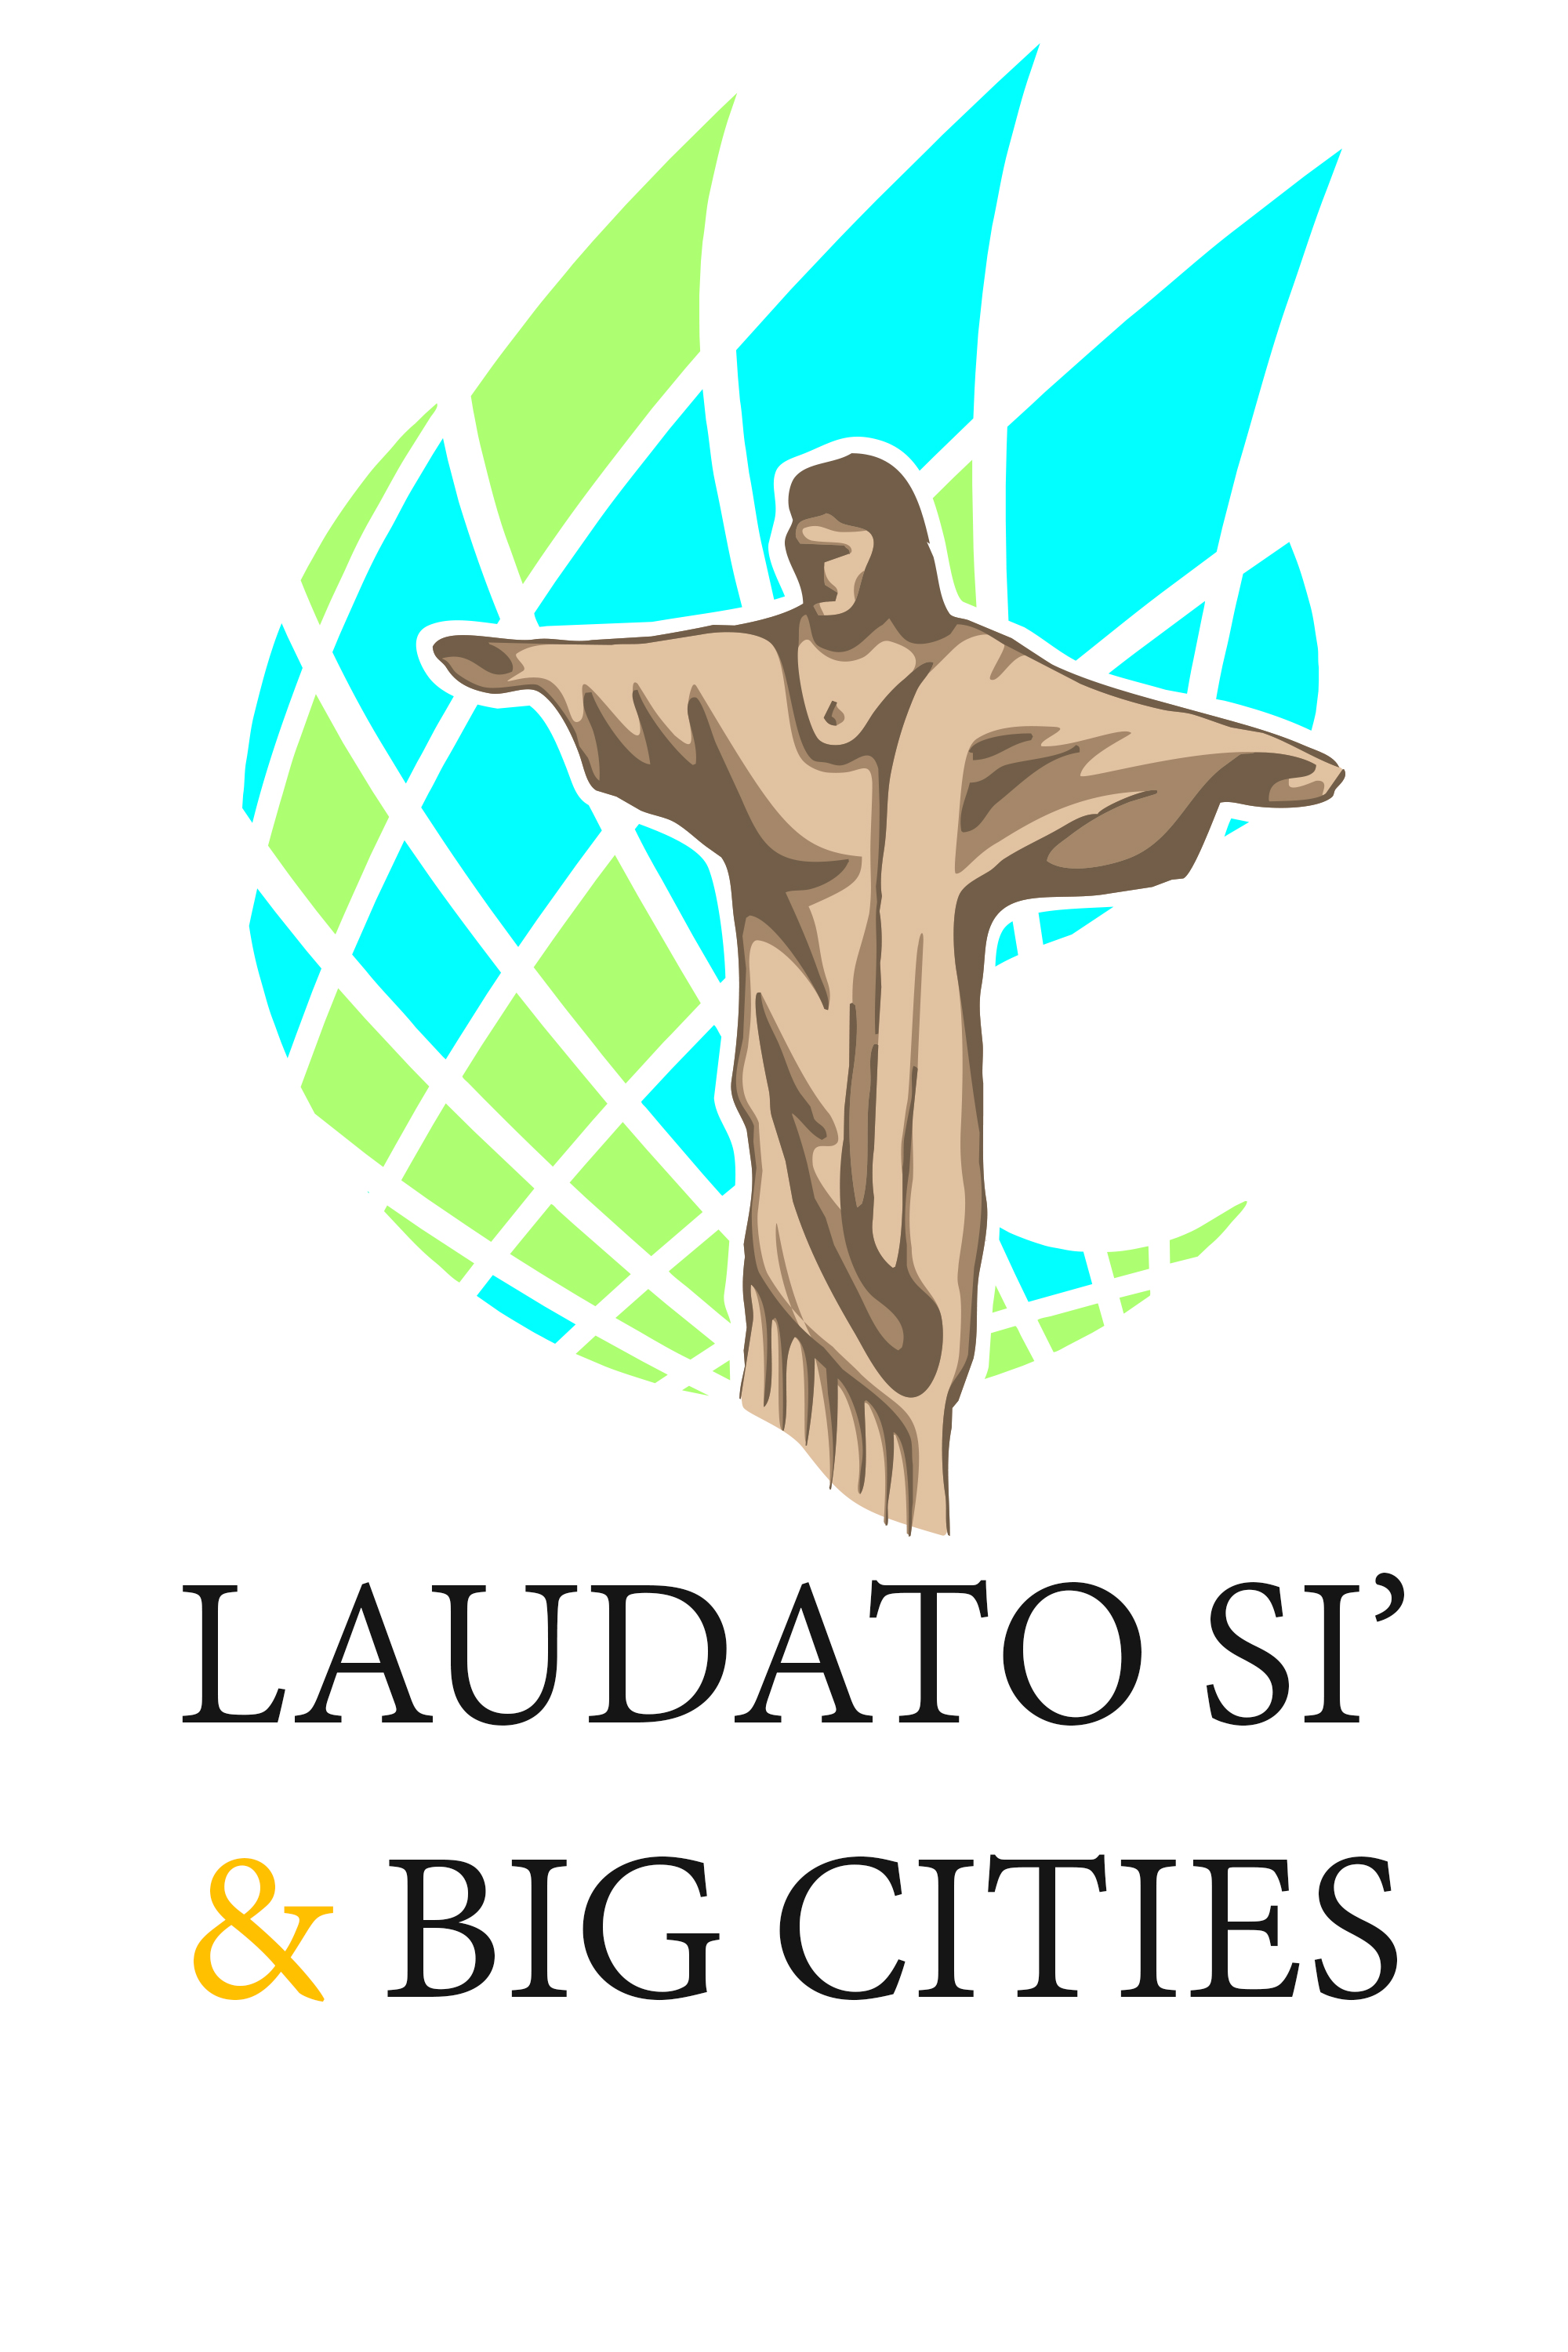 Laudato-Si-Text-Inf-JPG